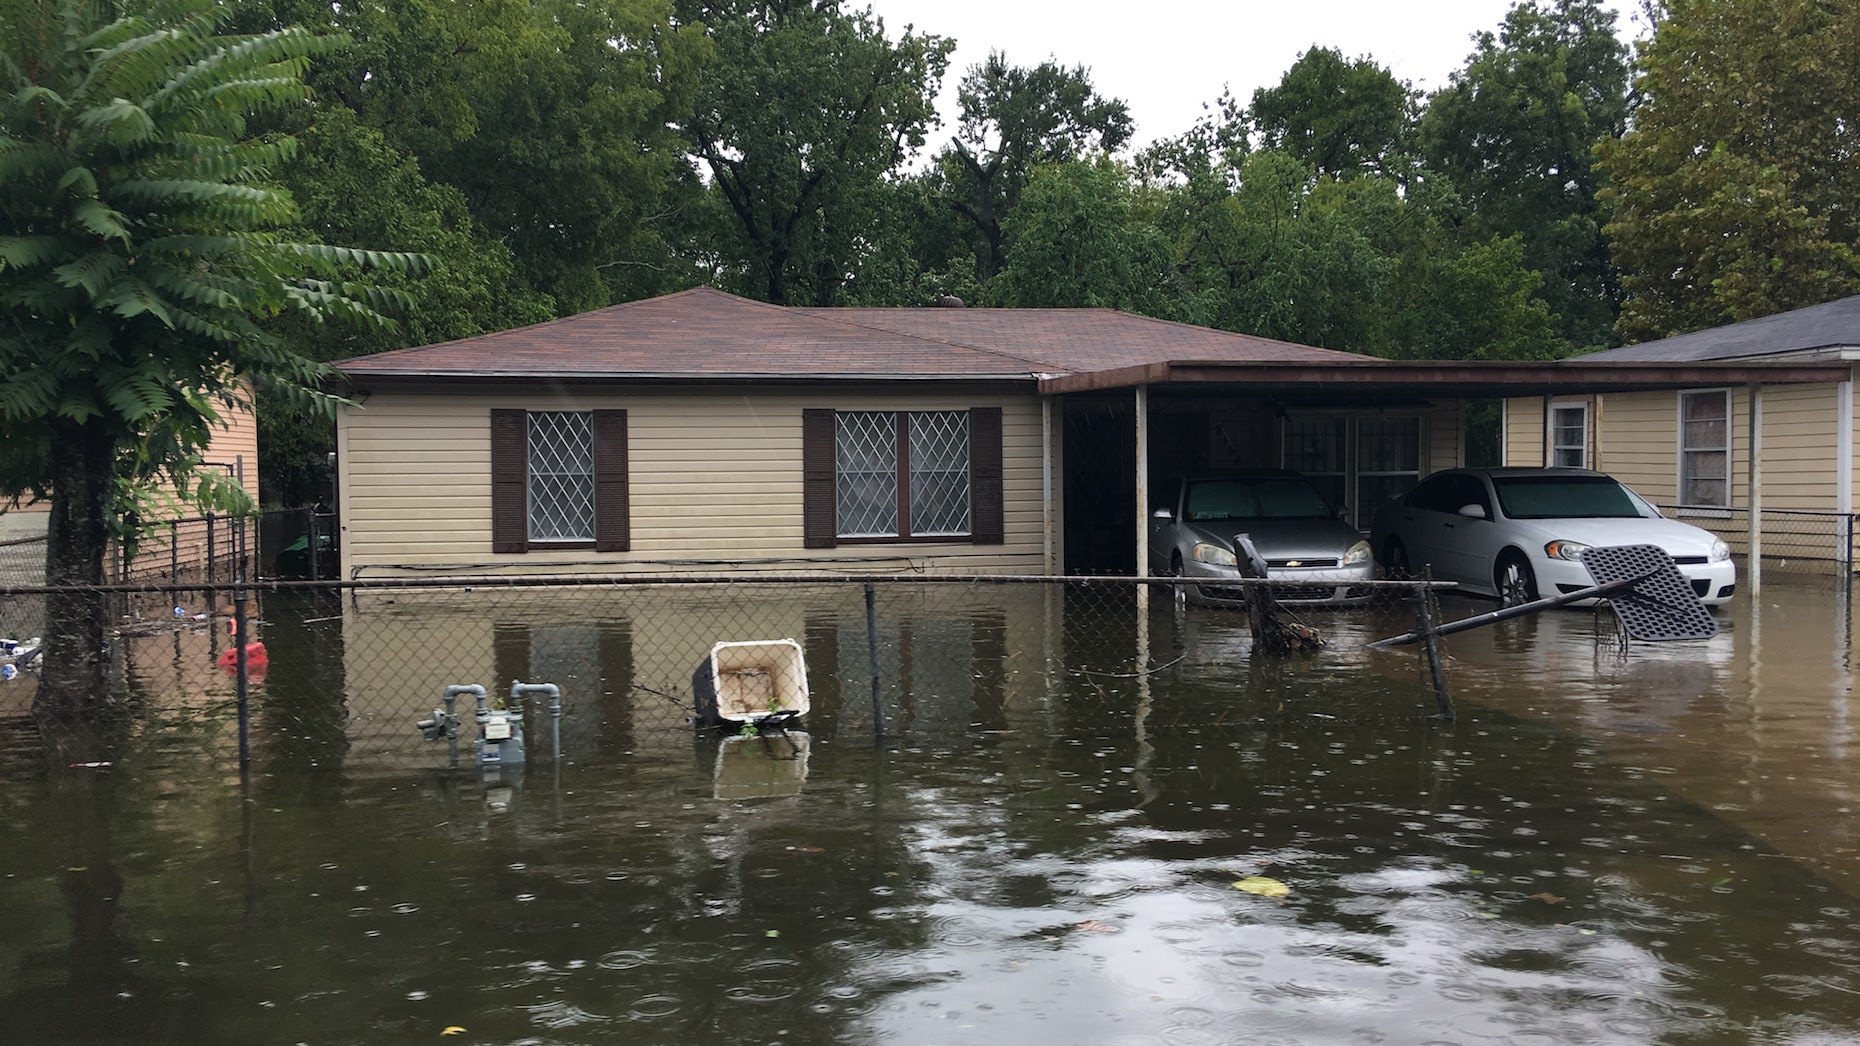 Homeowners are unprepared for flooding in many cities: Report